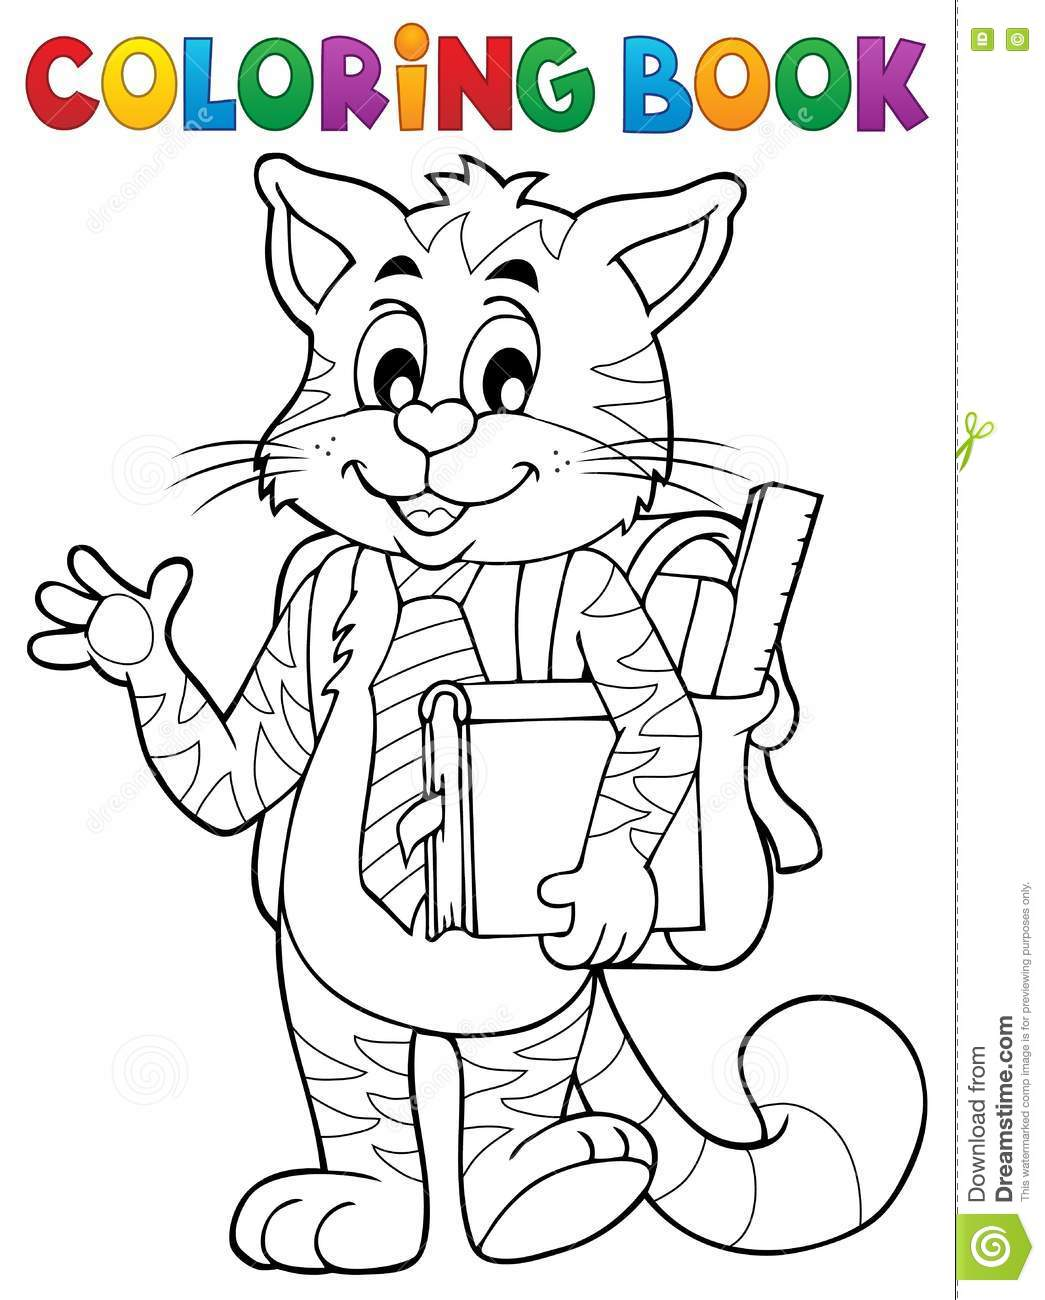 Coloring book school - Book Cat Coloring Eps10 Illustration School